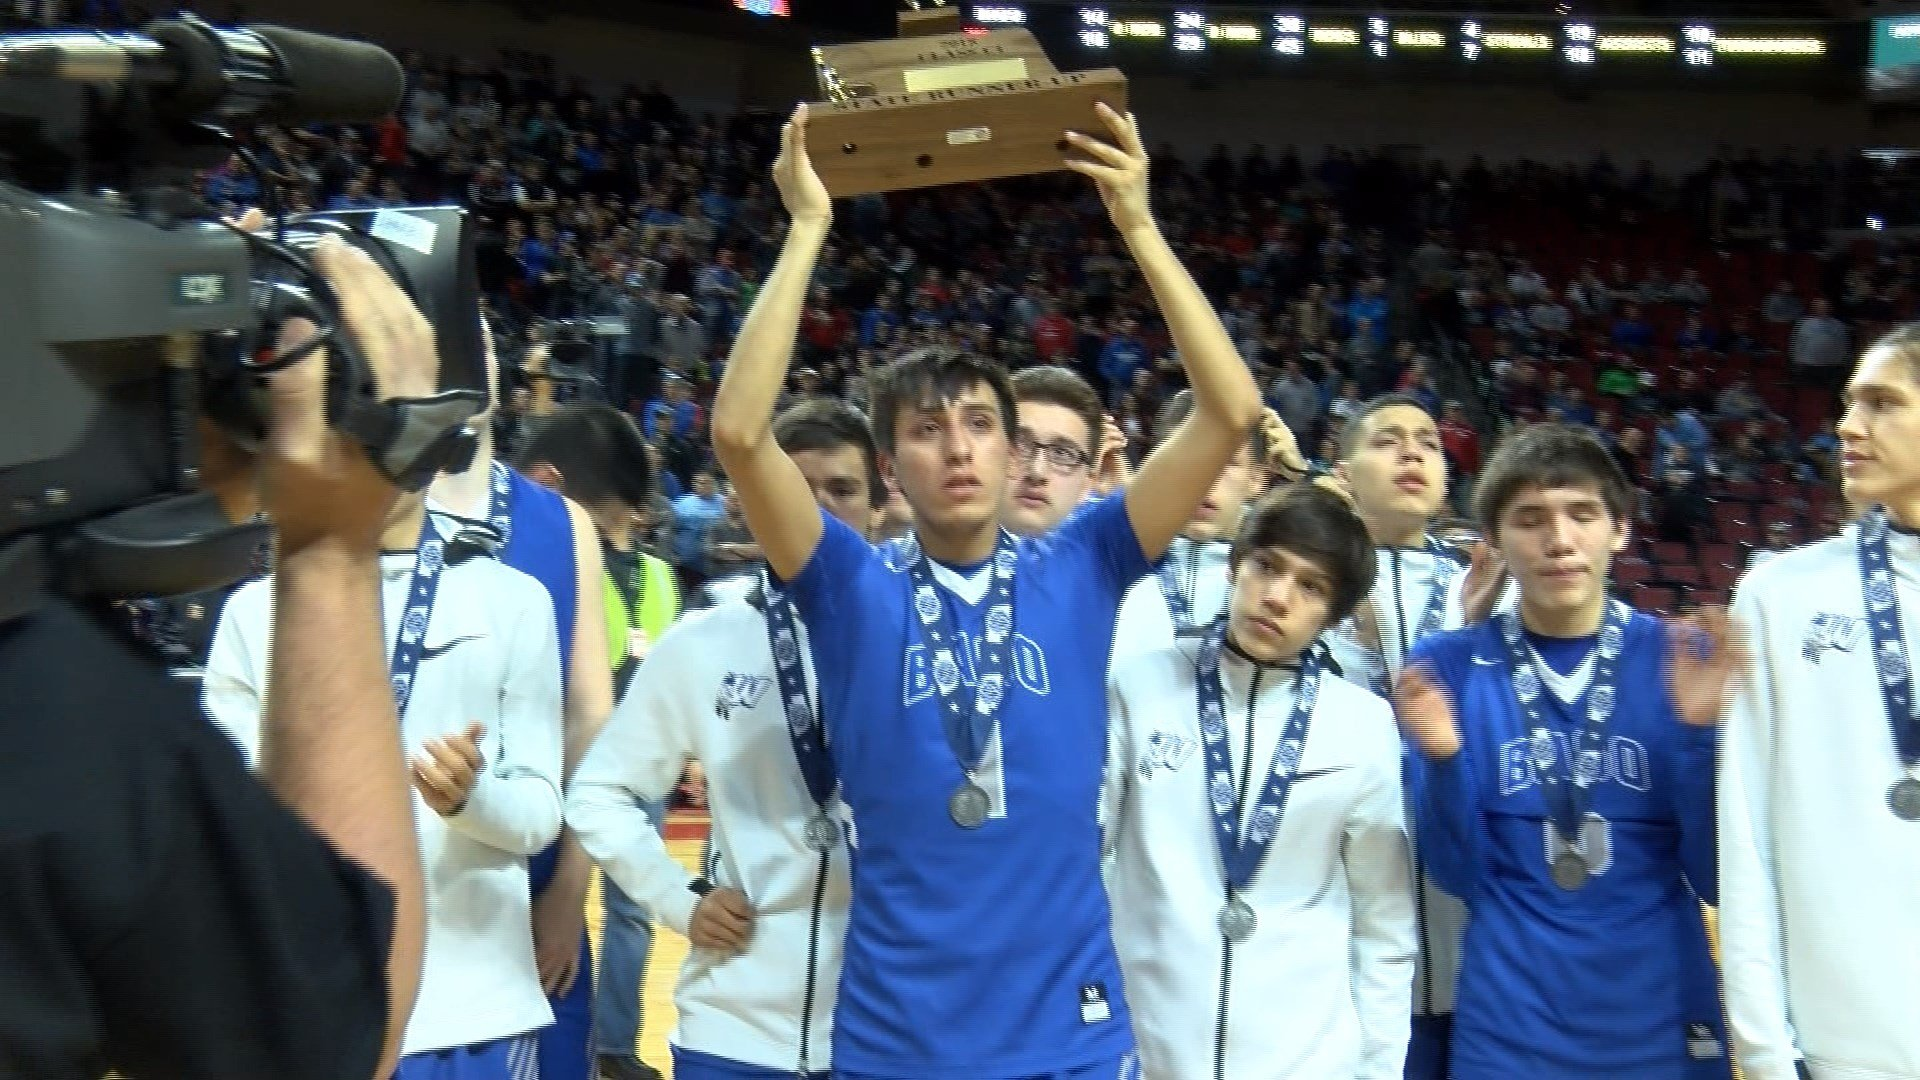 Winnebago finishes as C1 runners-up after a 70-66 overtime loss to Wahoo on Saturday.